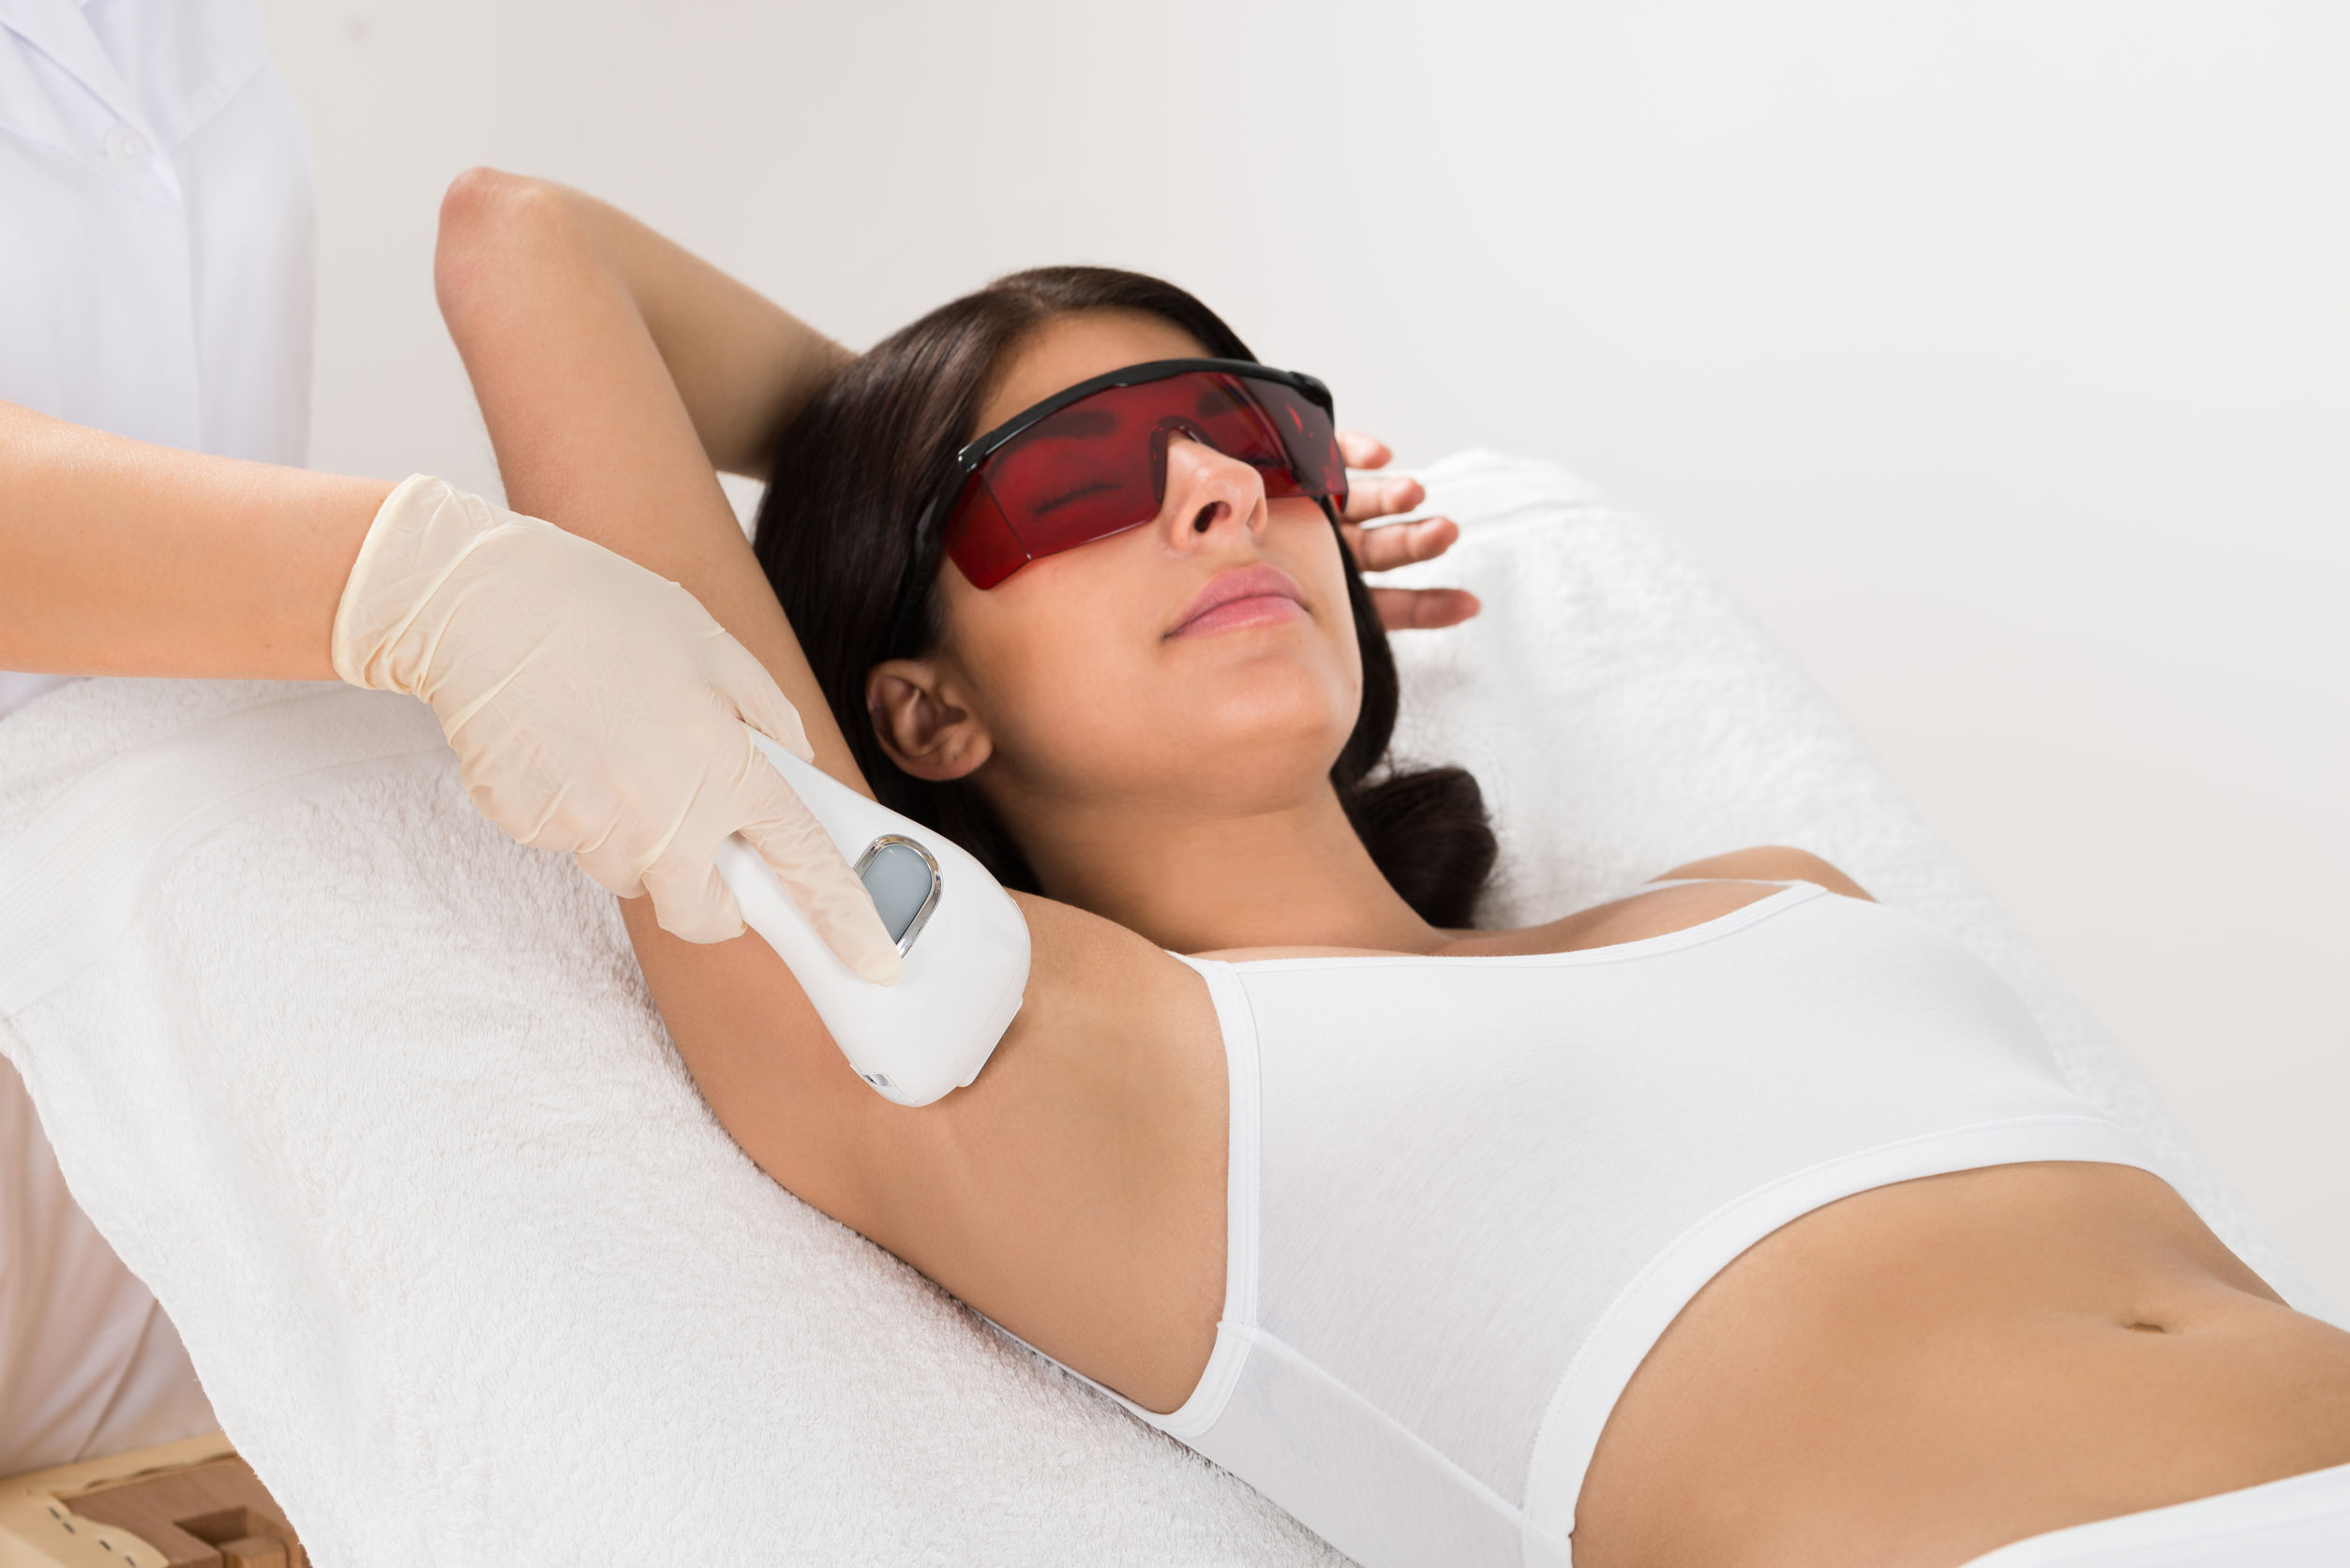 laser hair removal treatment woman photo